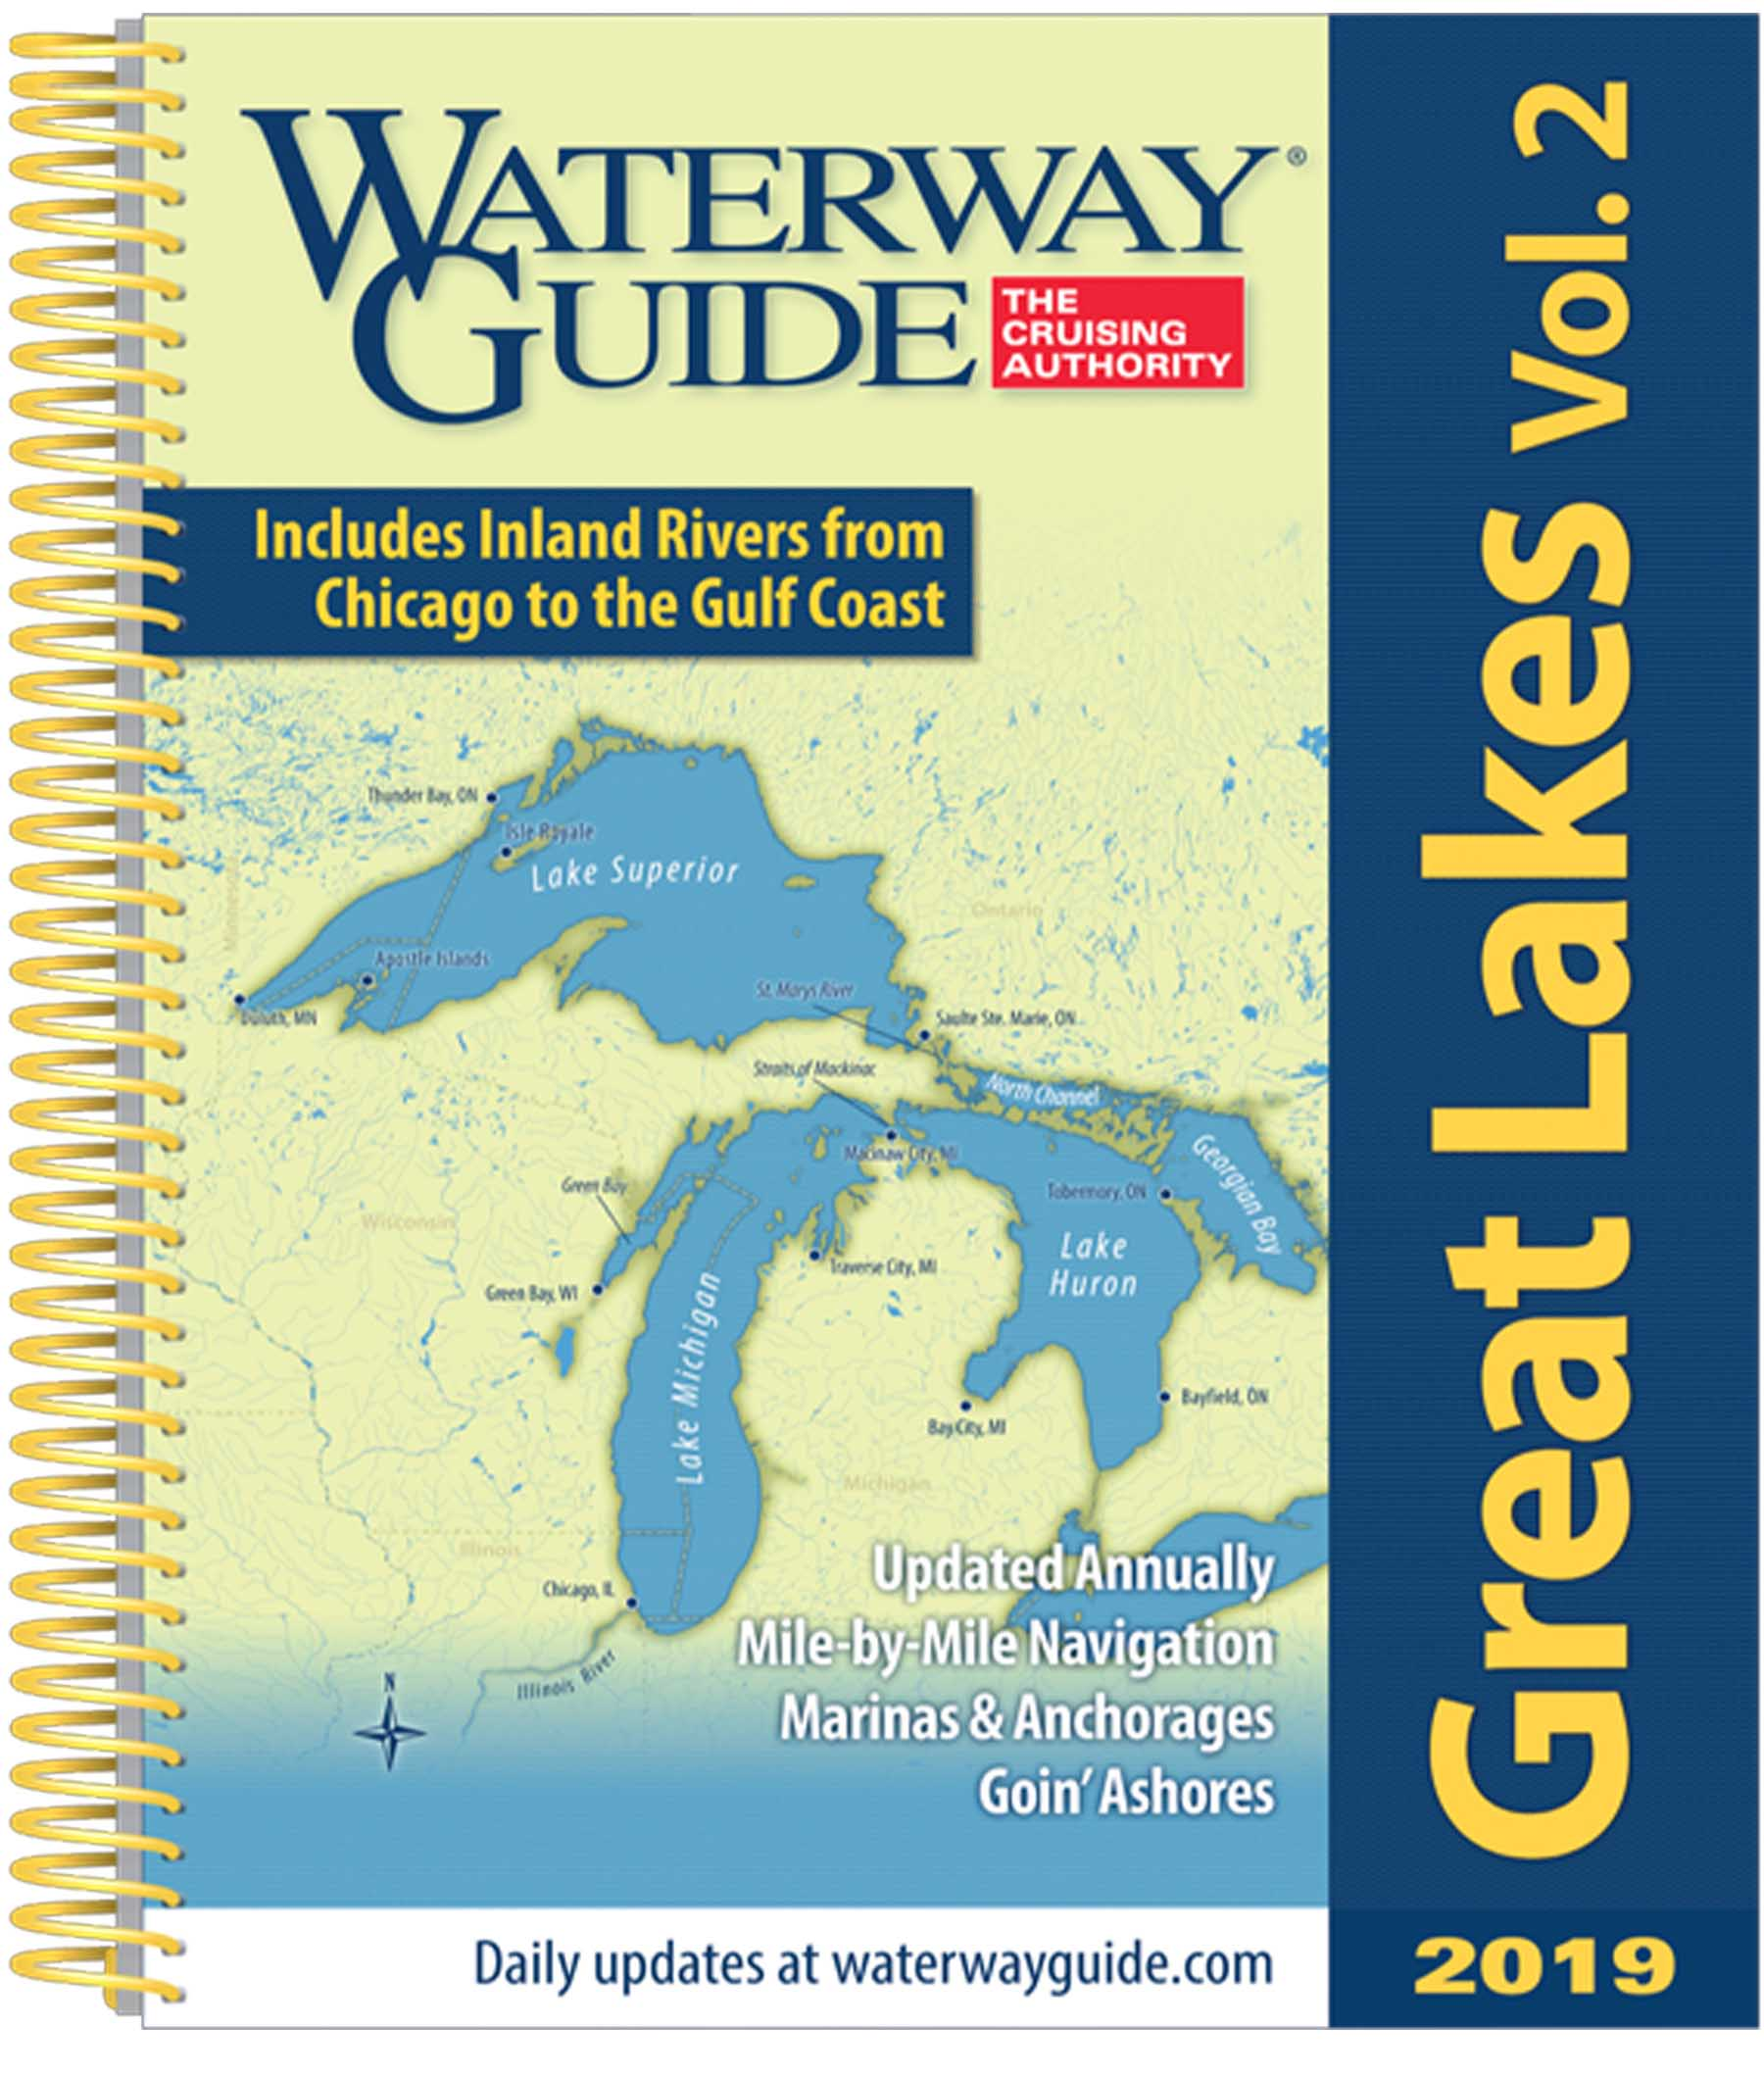 Waterway-Great-Lakes-Vol.2-2019